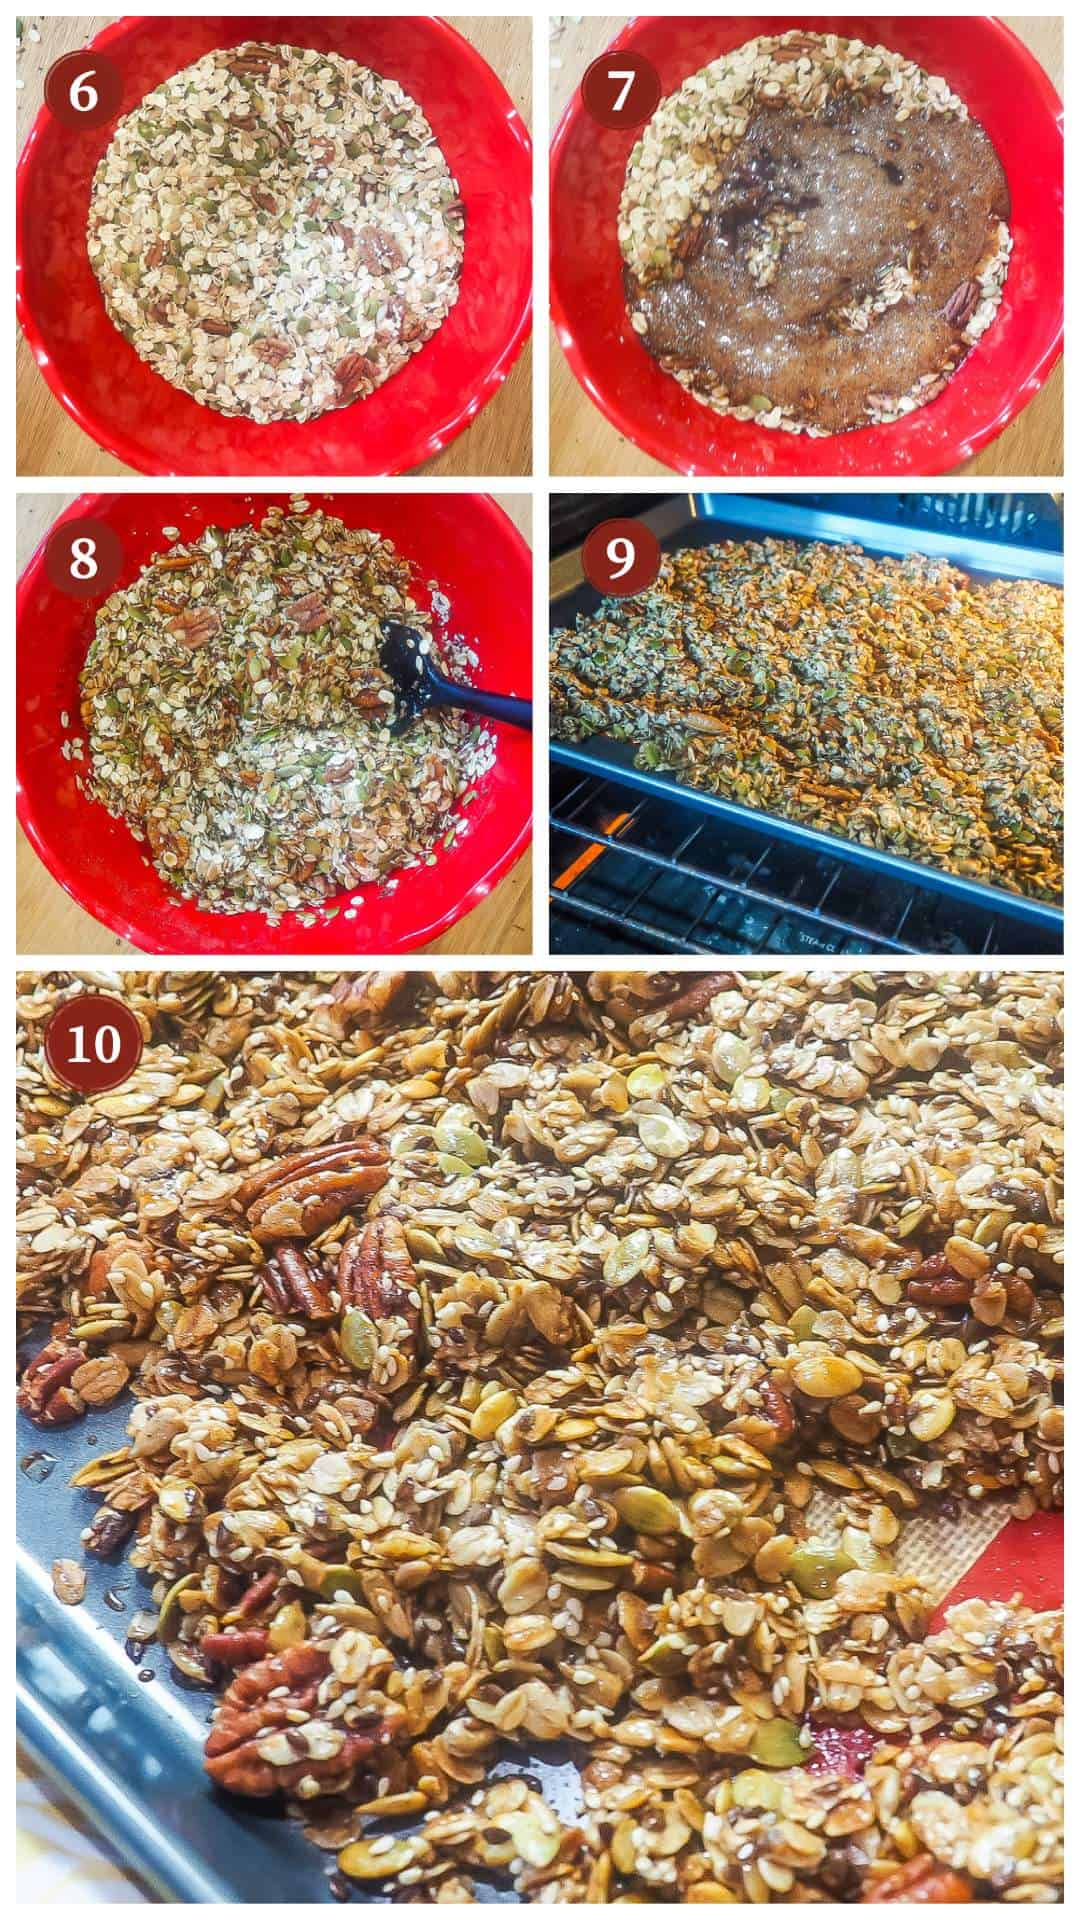 A collage of images showing how to make homemade granola, steps 6 - 10.